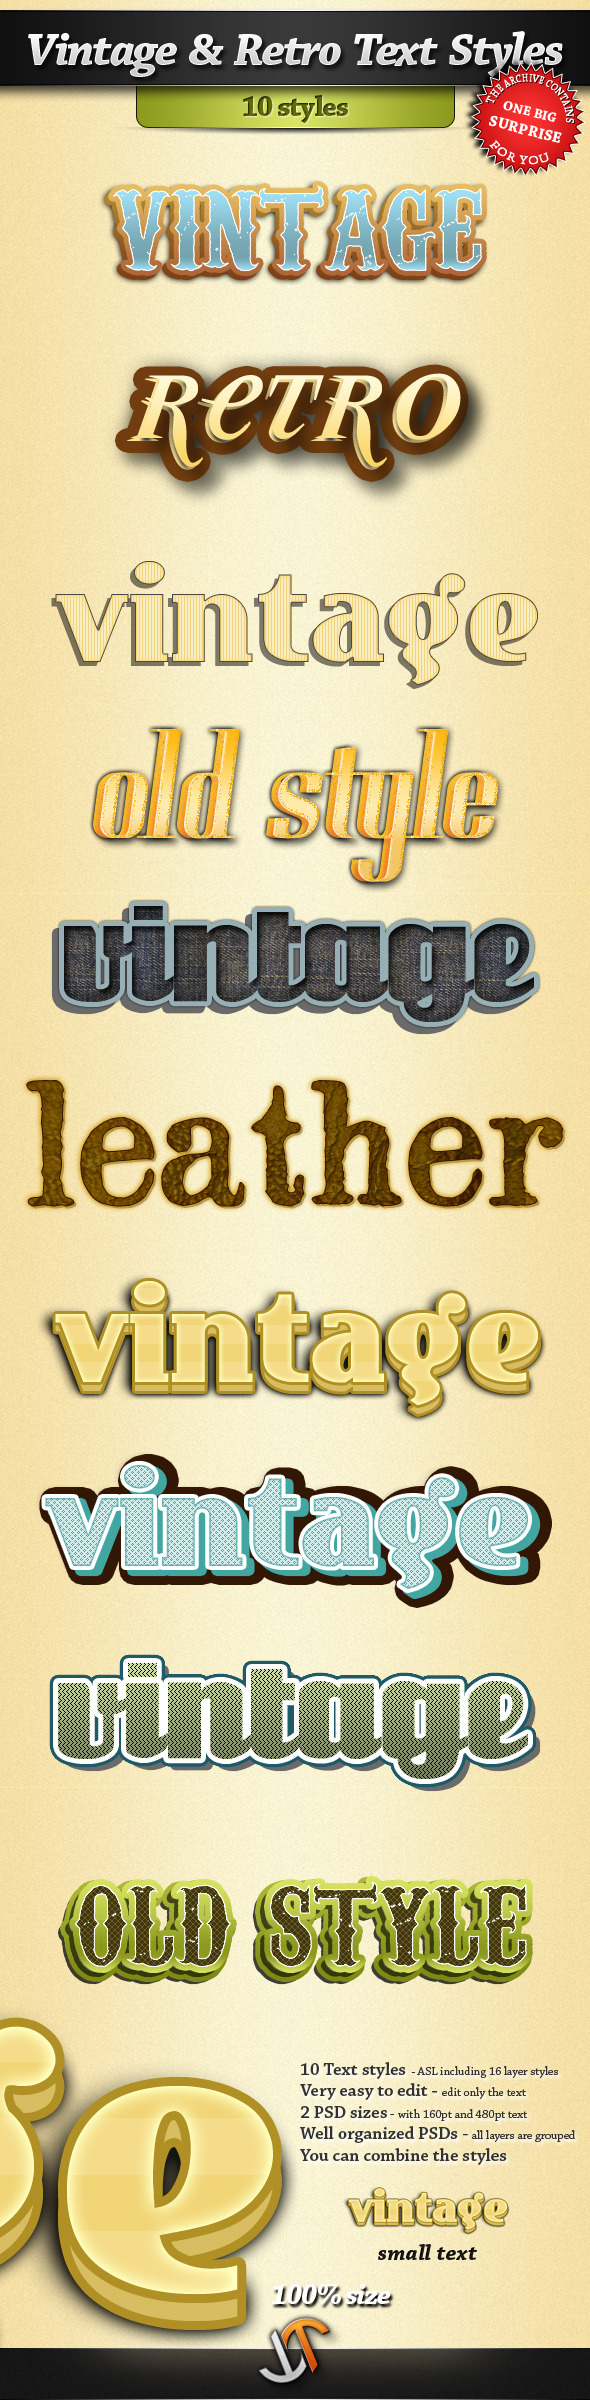 Vintage and Retro Text Styles